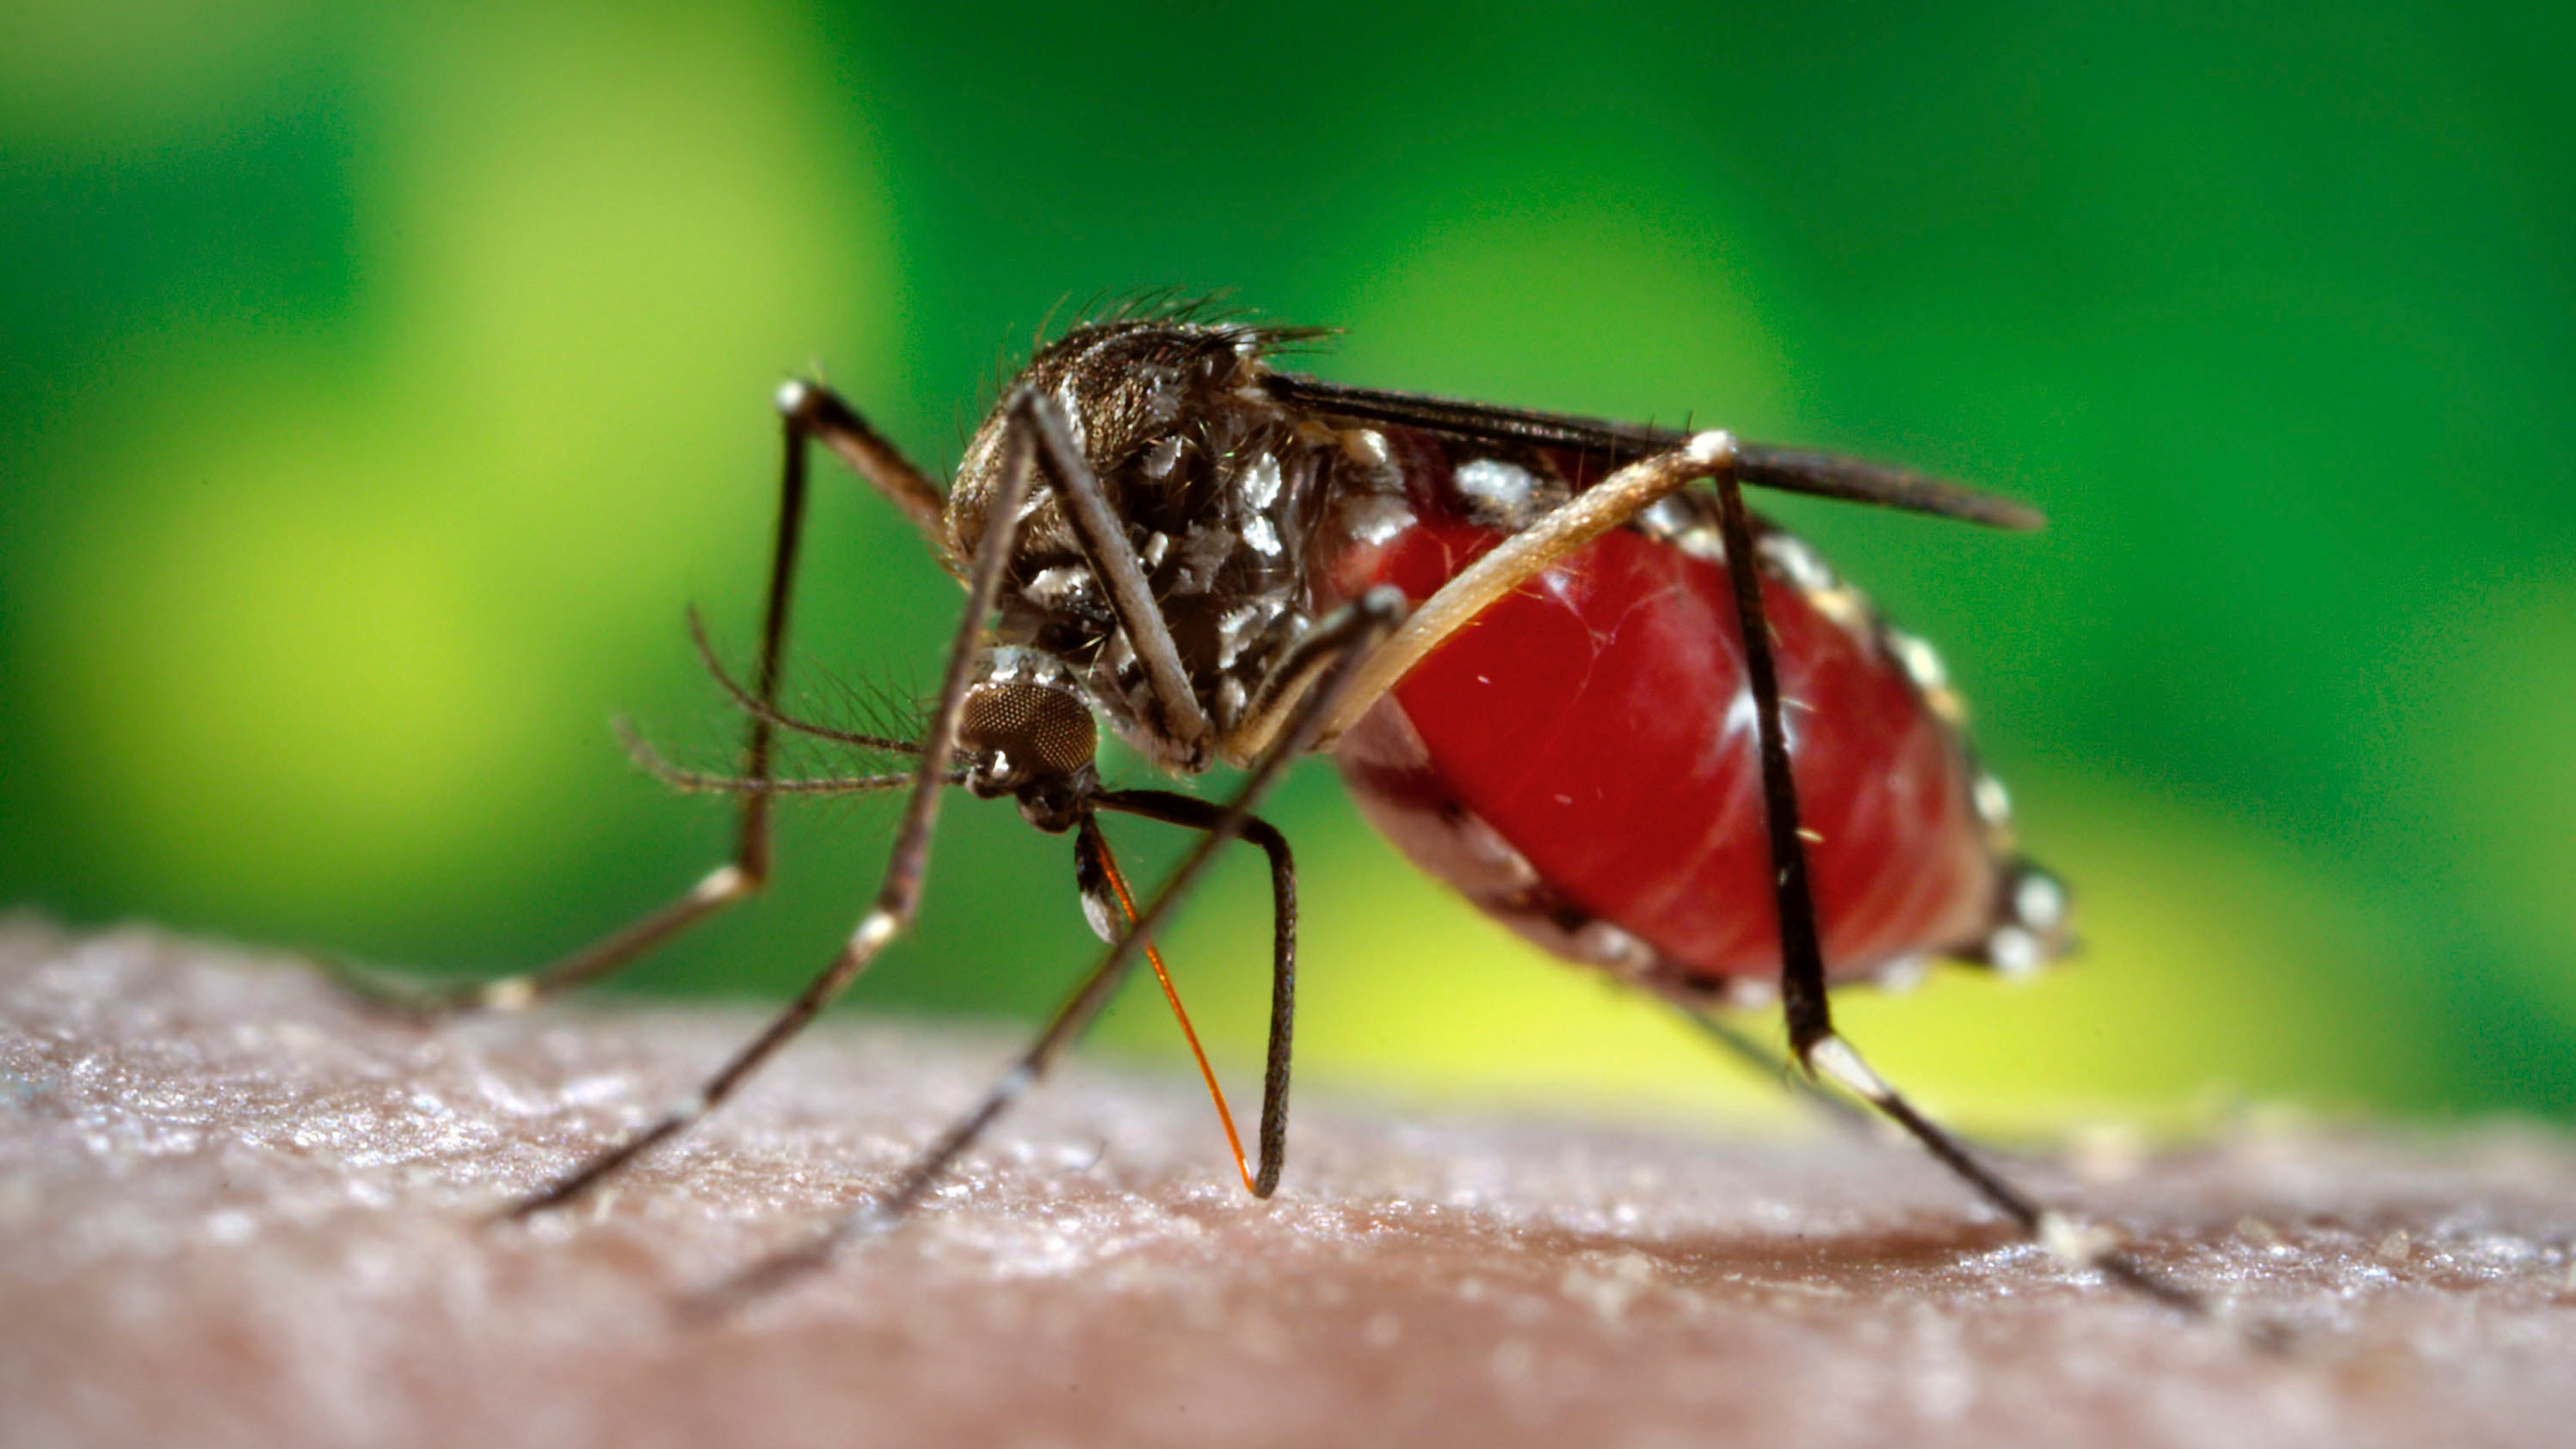 Scientists Discover That Dengue Fever Could Be Transmitted Sexually